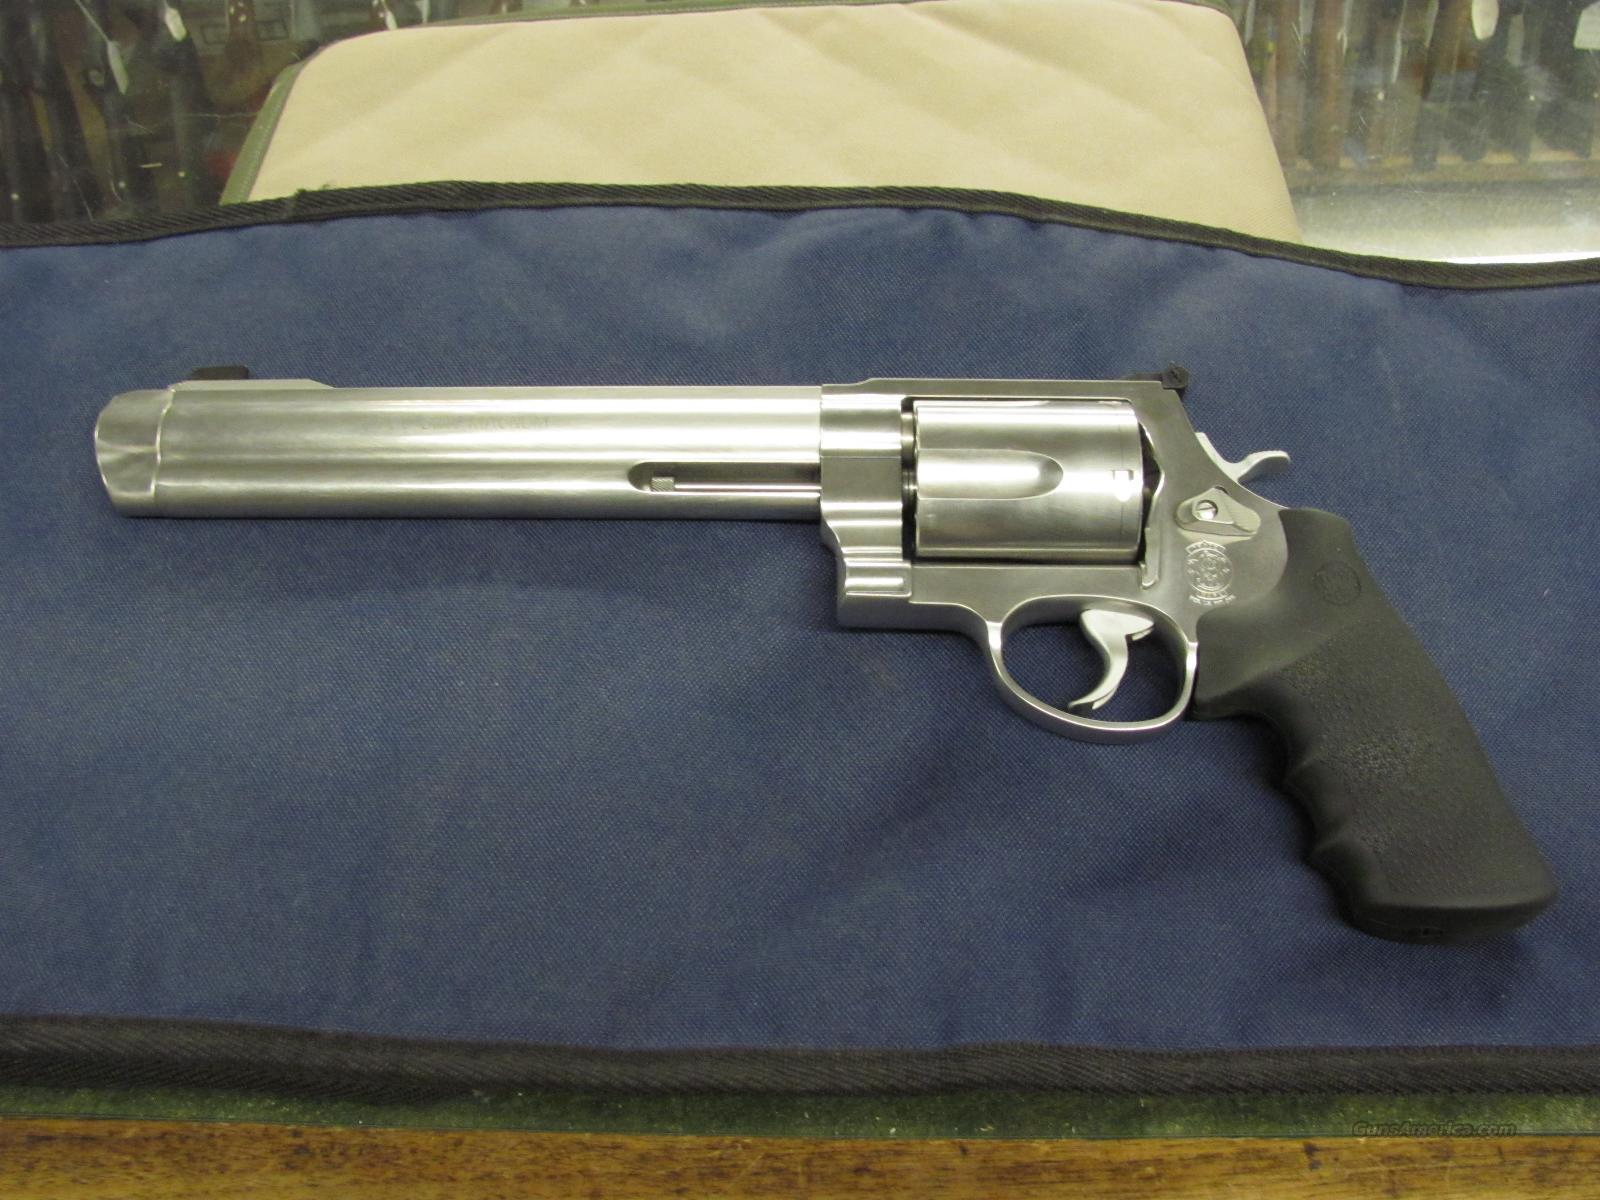 Smith & Wesson Model 500 8.375 inch Standard Comp  **NEW**  Guns > Pistols > Smith & Wesson Revolvers > Full Frame Revolver